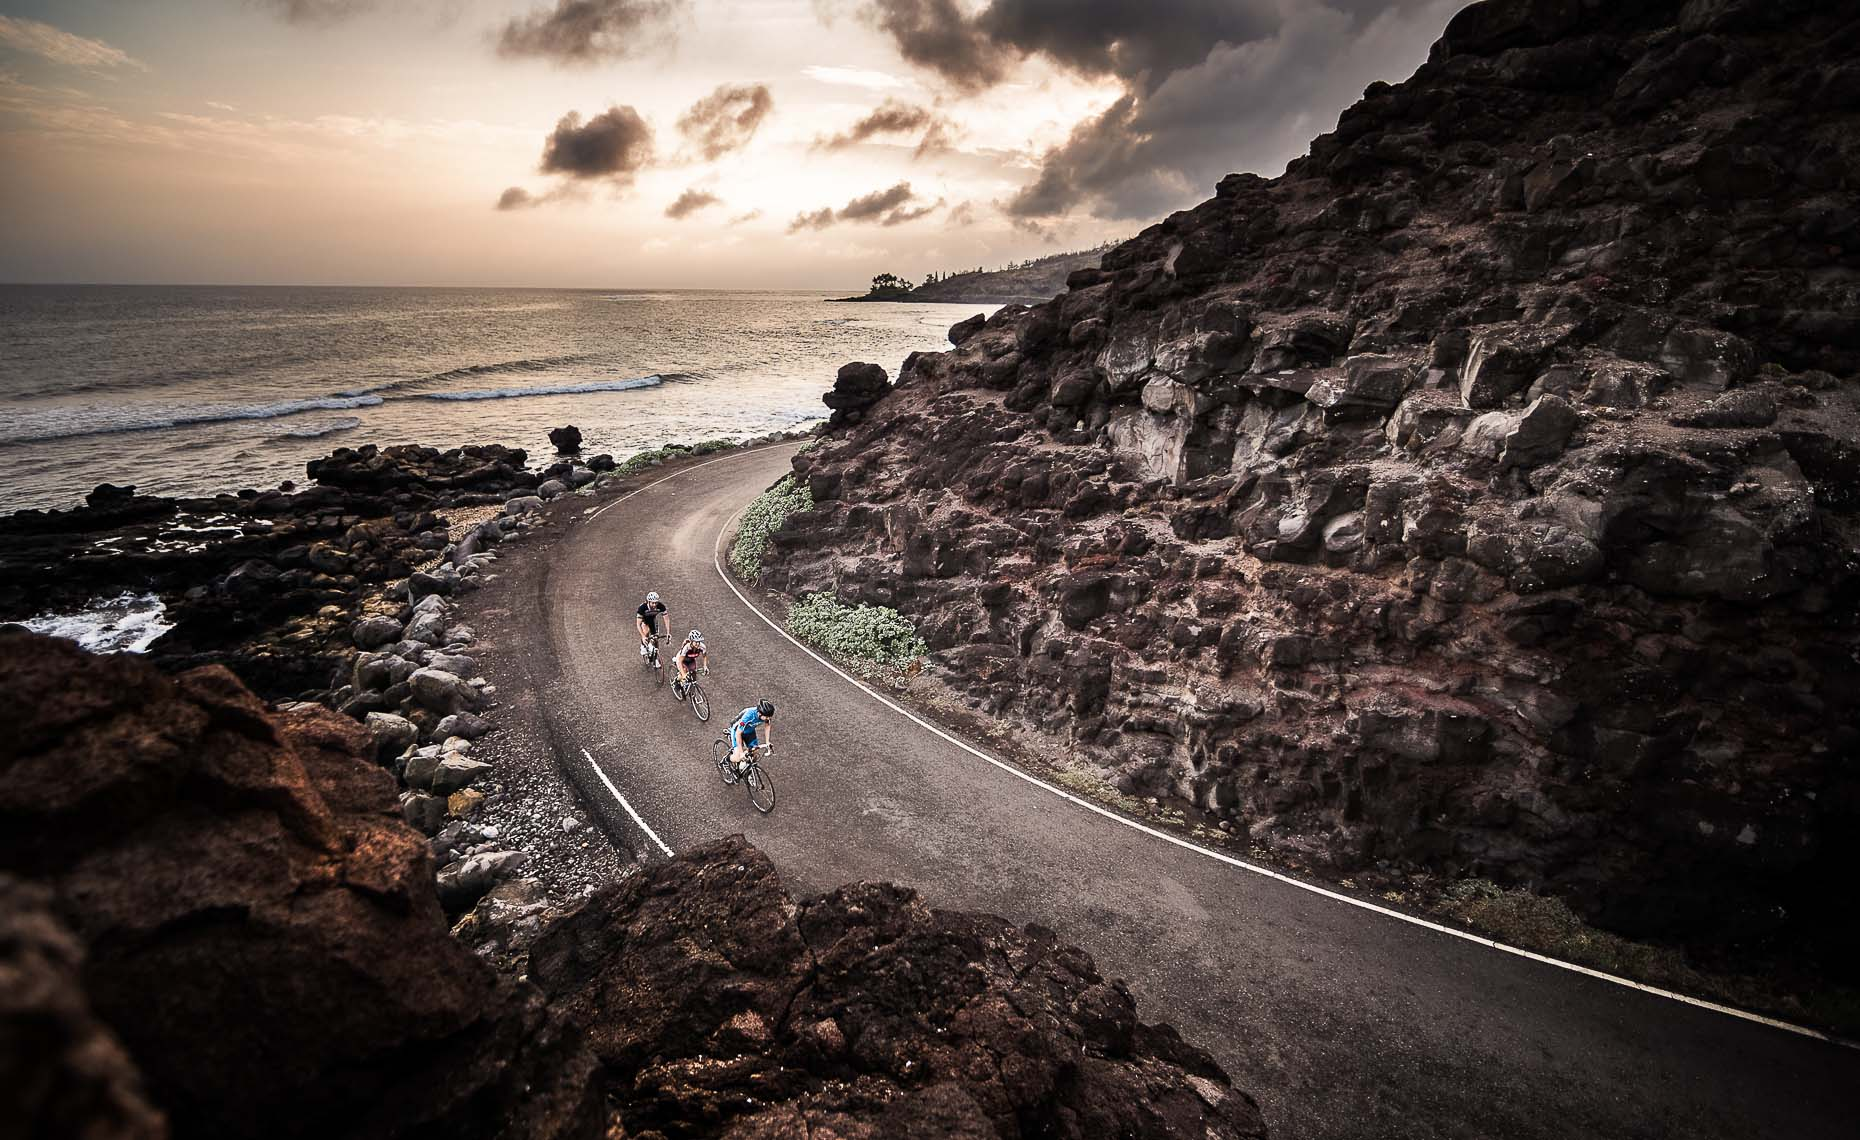 road riding sunset bike shot from maui by whistler photographer